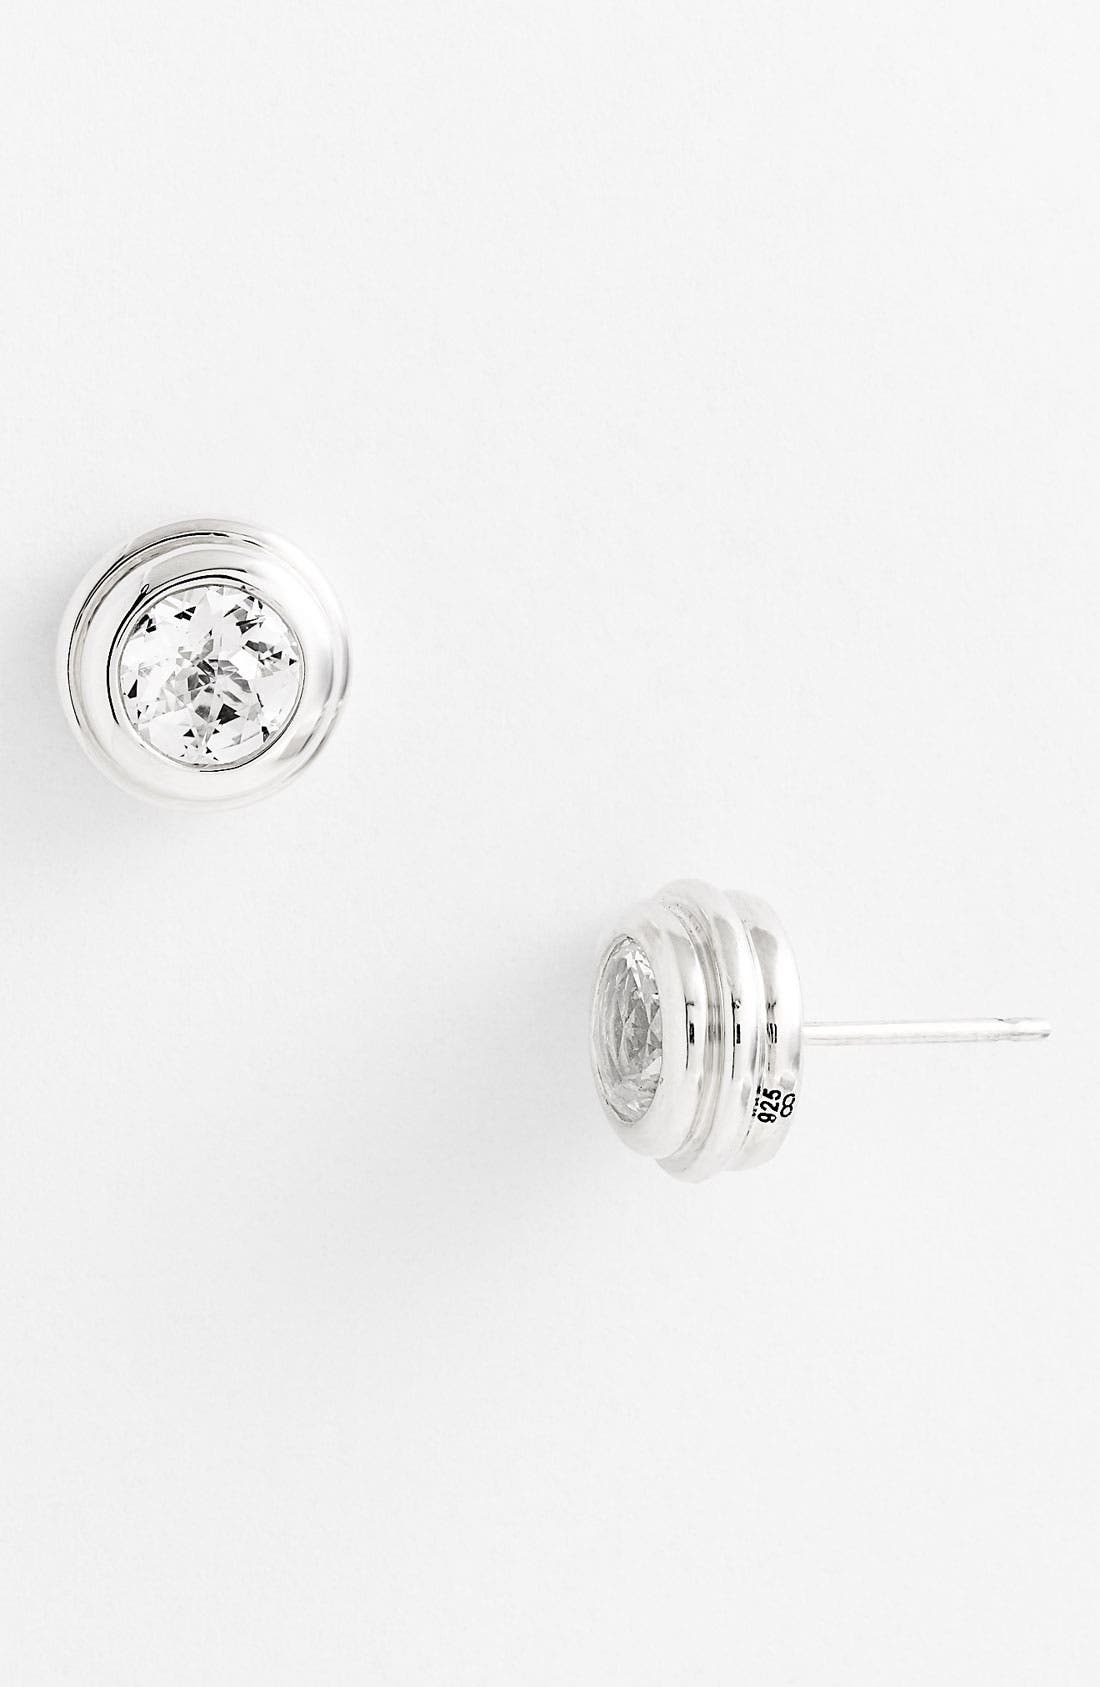 Alternate Image 1 Selected - John Hardy 'Bedeg' Round Stud Earrings